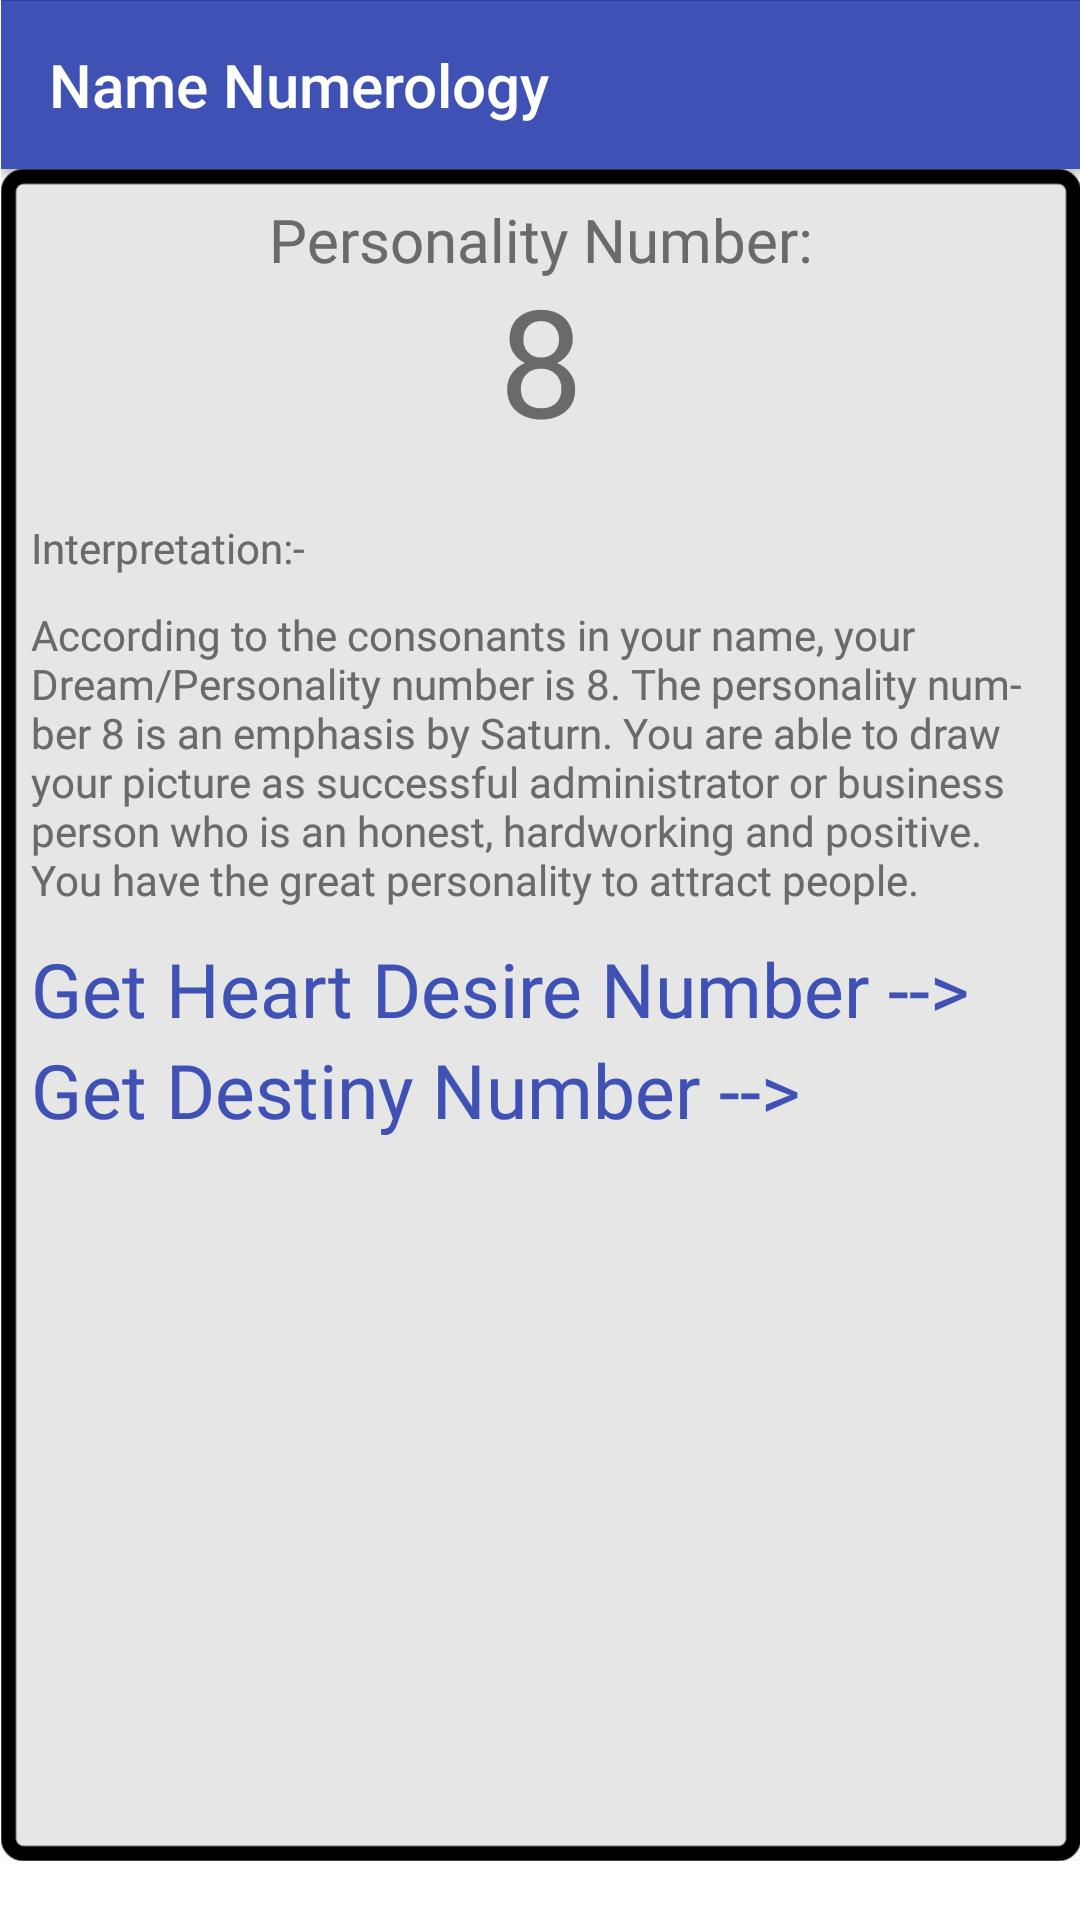 Name Numerology for Android - APK Download